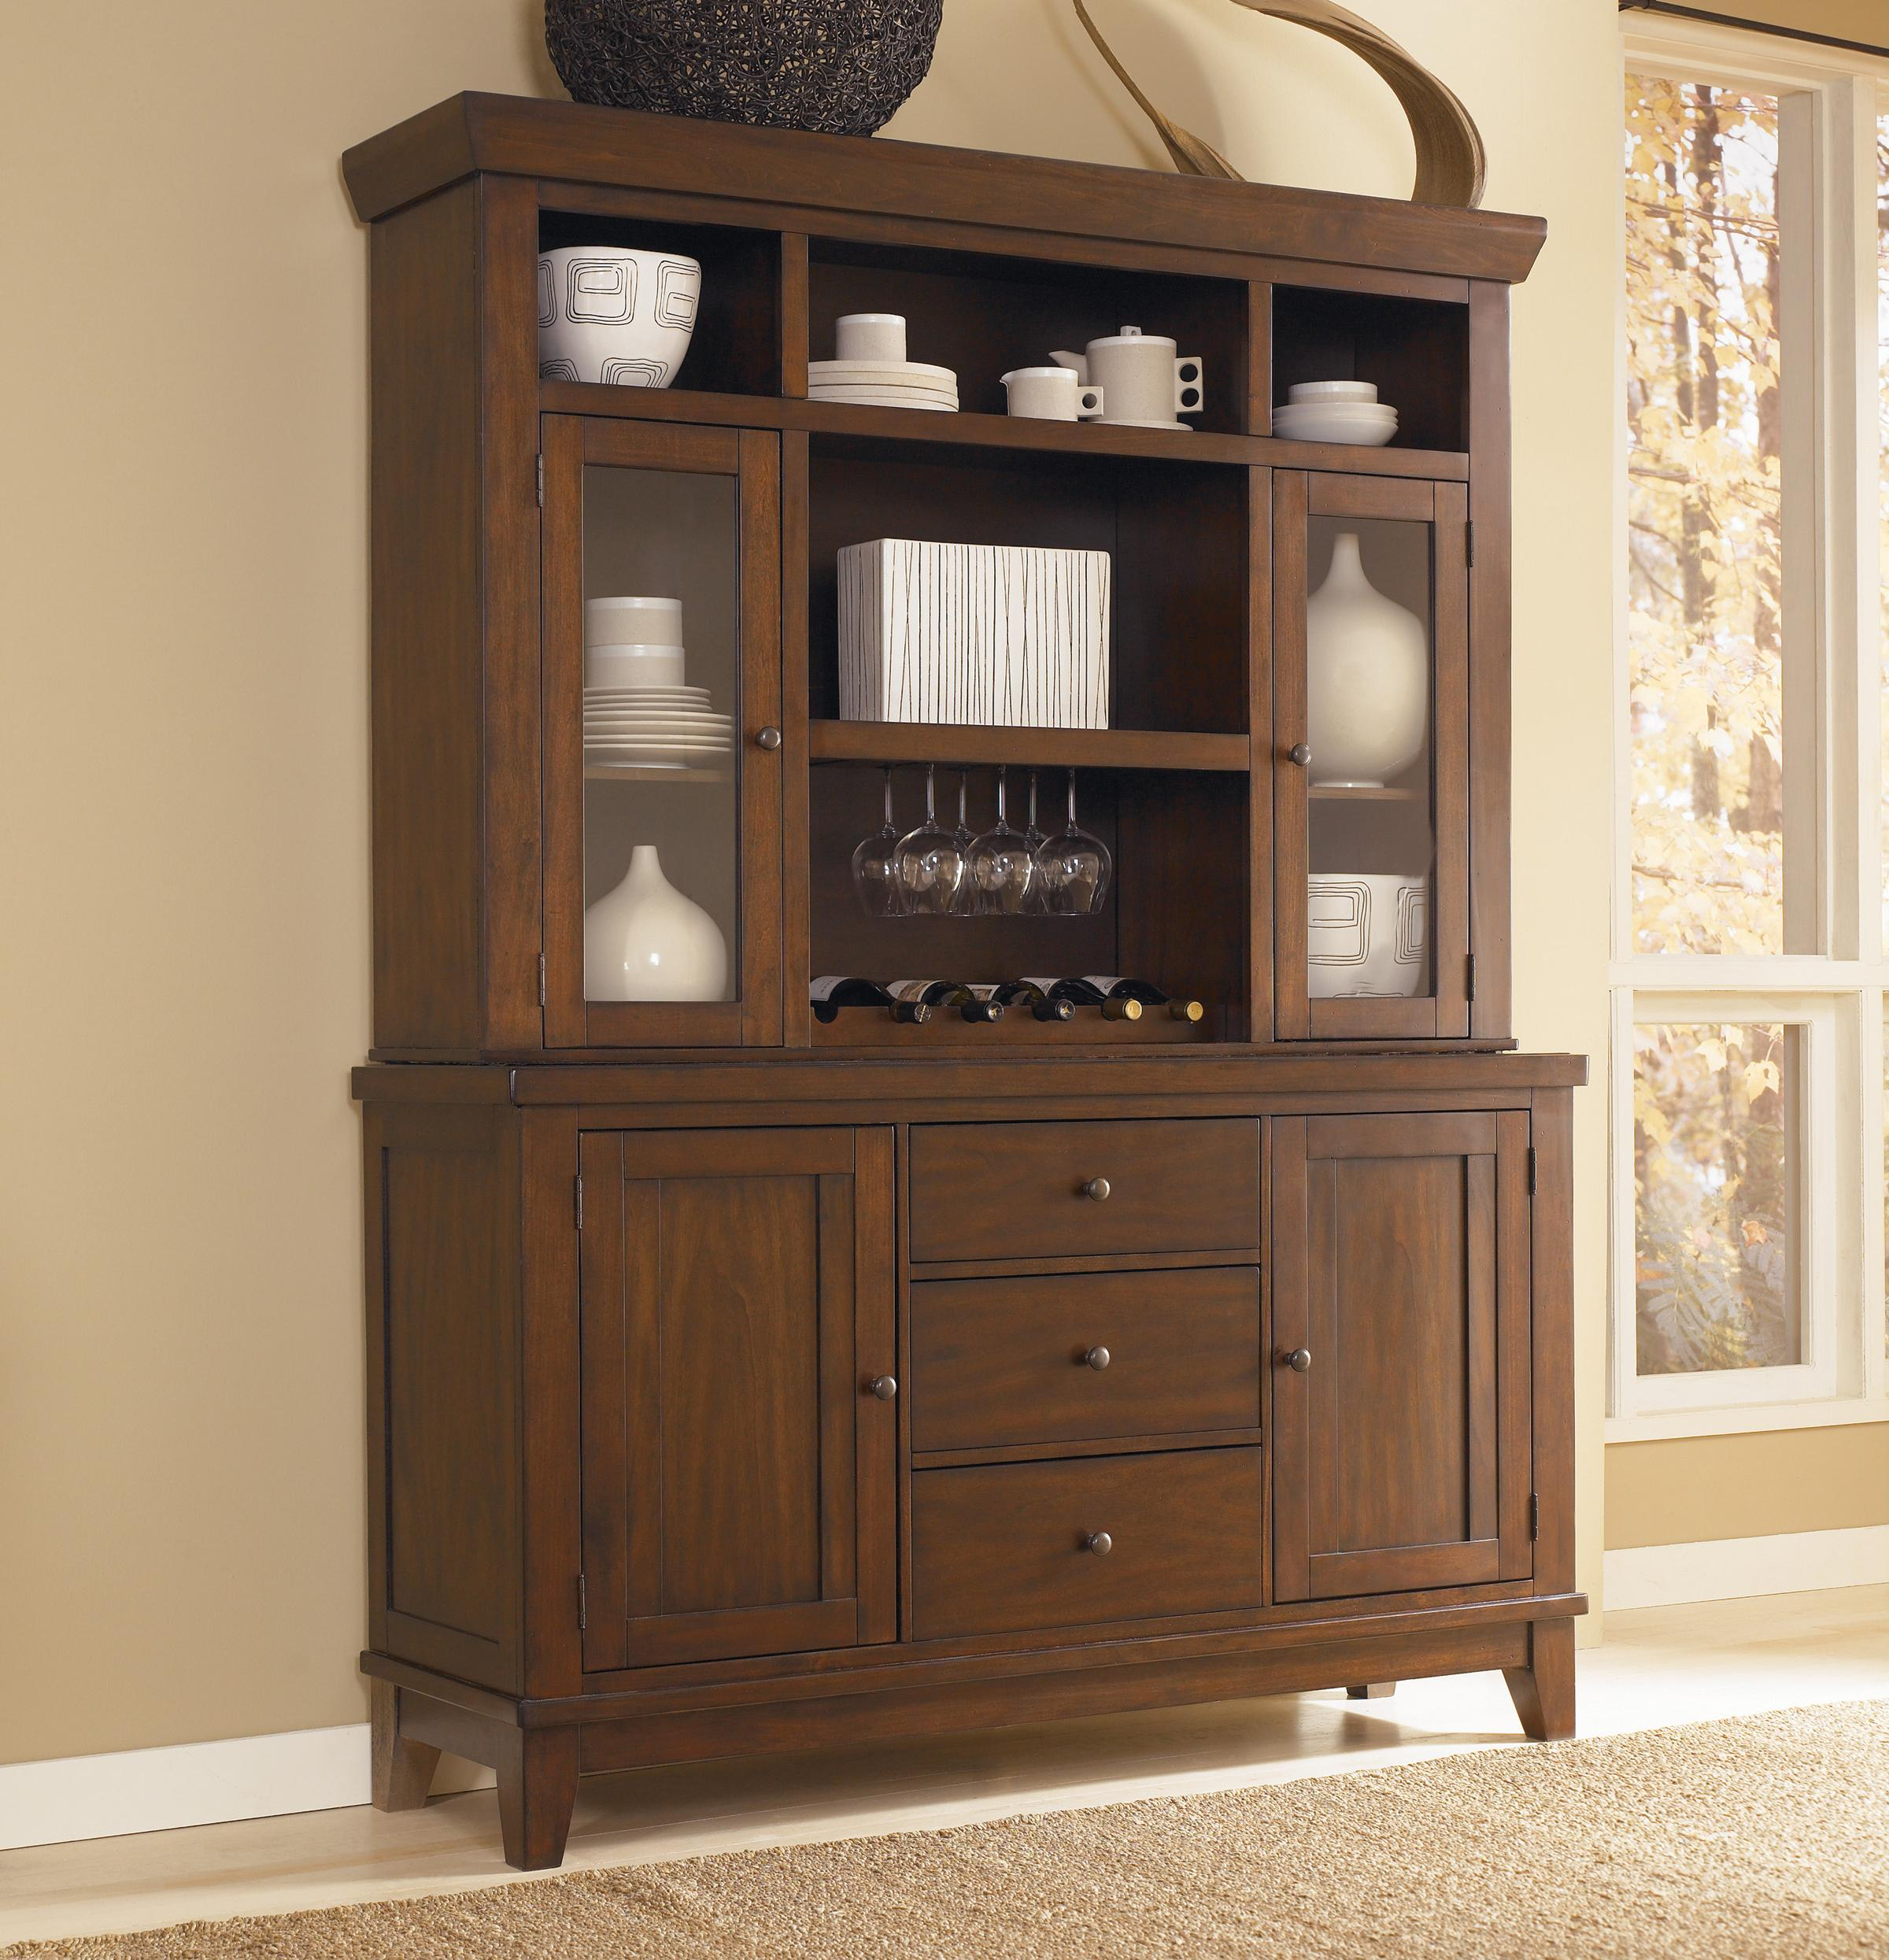 Holloway Dining Room China Cabinet By Millennium